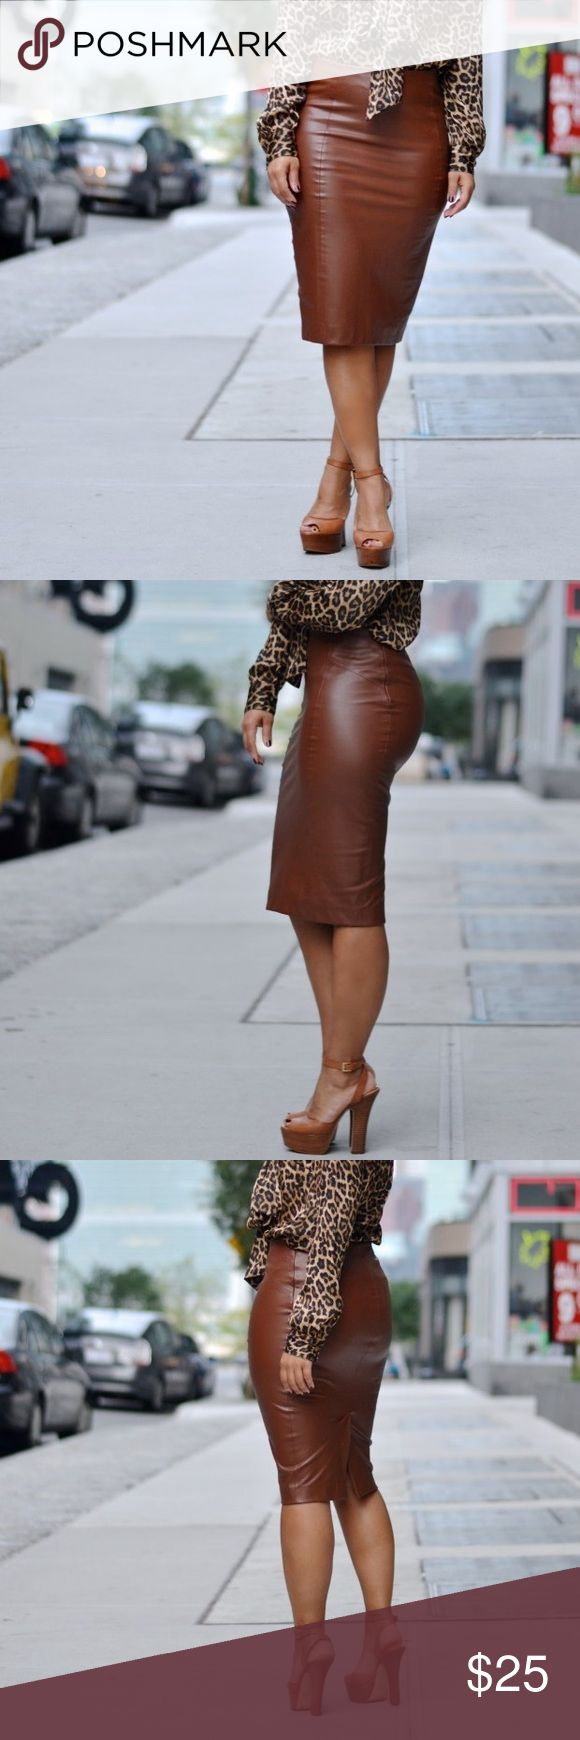 """Zara Brown Faux Leather Pencil Skirt Excellent conditions. 23"""" from waist. Fitted. Hidden side zip and back slit. Skirts Pencil"""